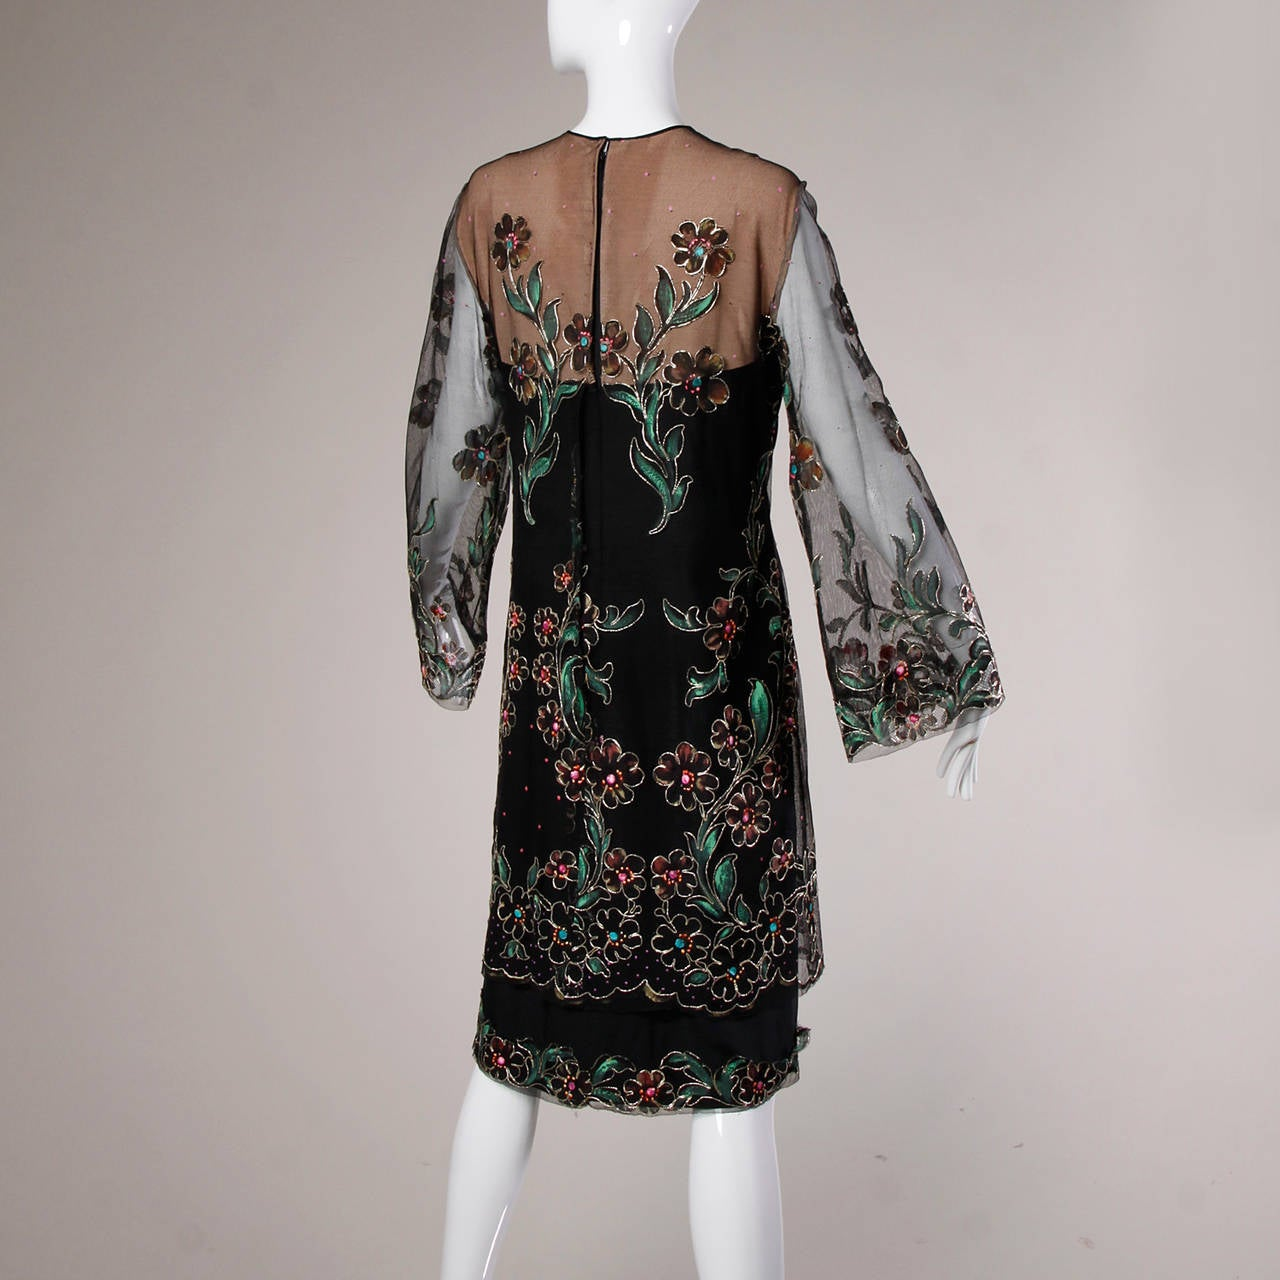 Travilla Vintage Metallic Hand Painted Flowers Nude Illusion Dress 8